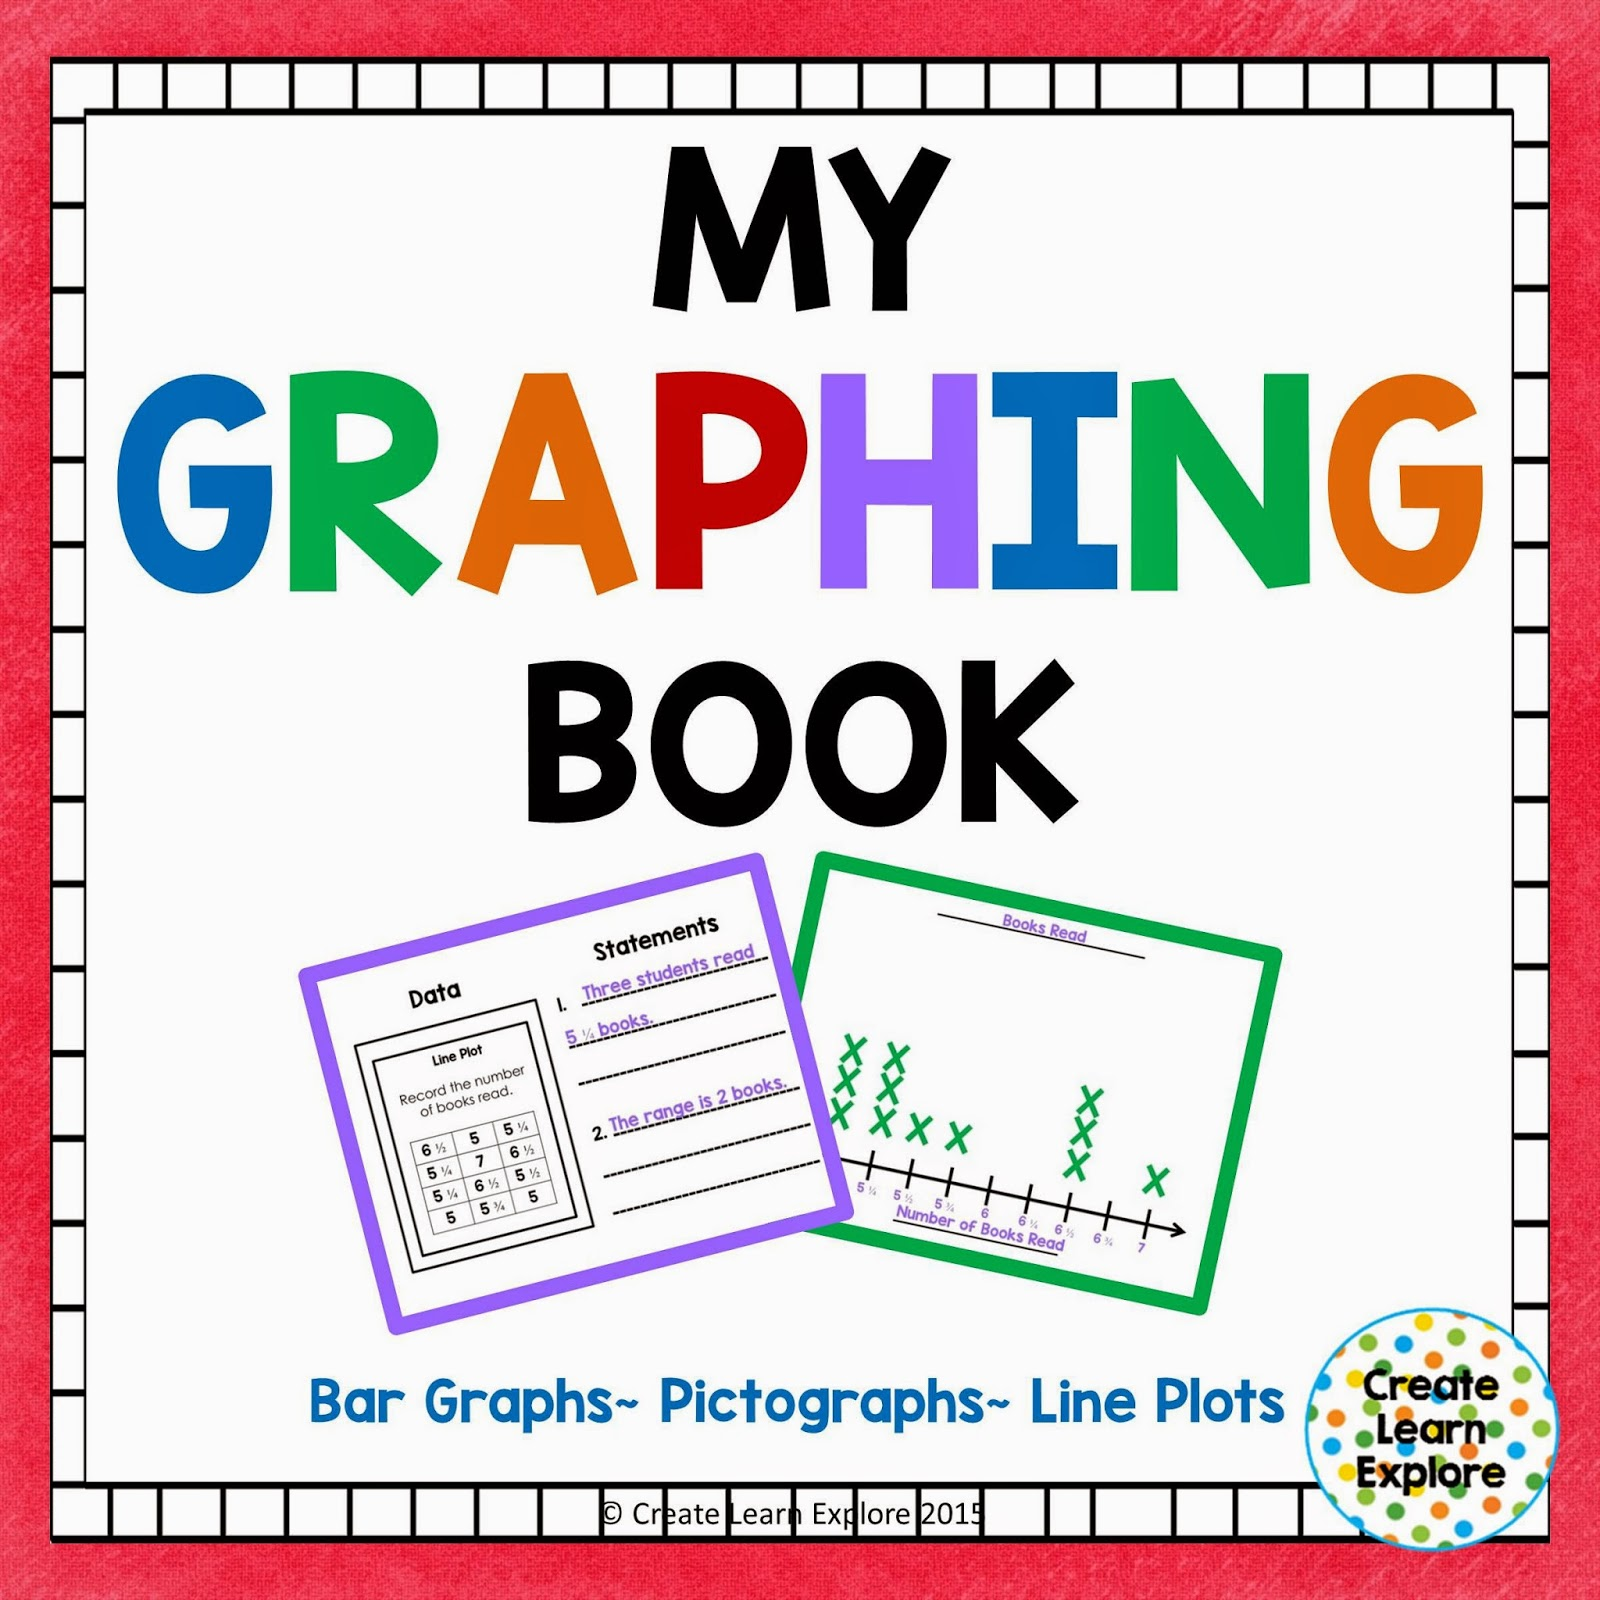 https://www.teacherspayteachers.com/Product/My-Graphing-Book-Bar-Graphs-Pictographs-Line-Plots-1679508